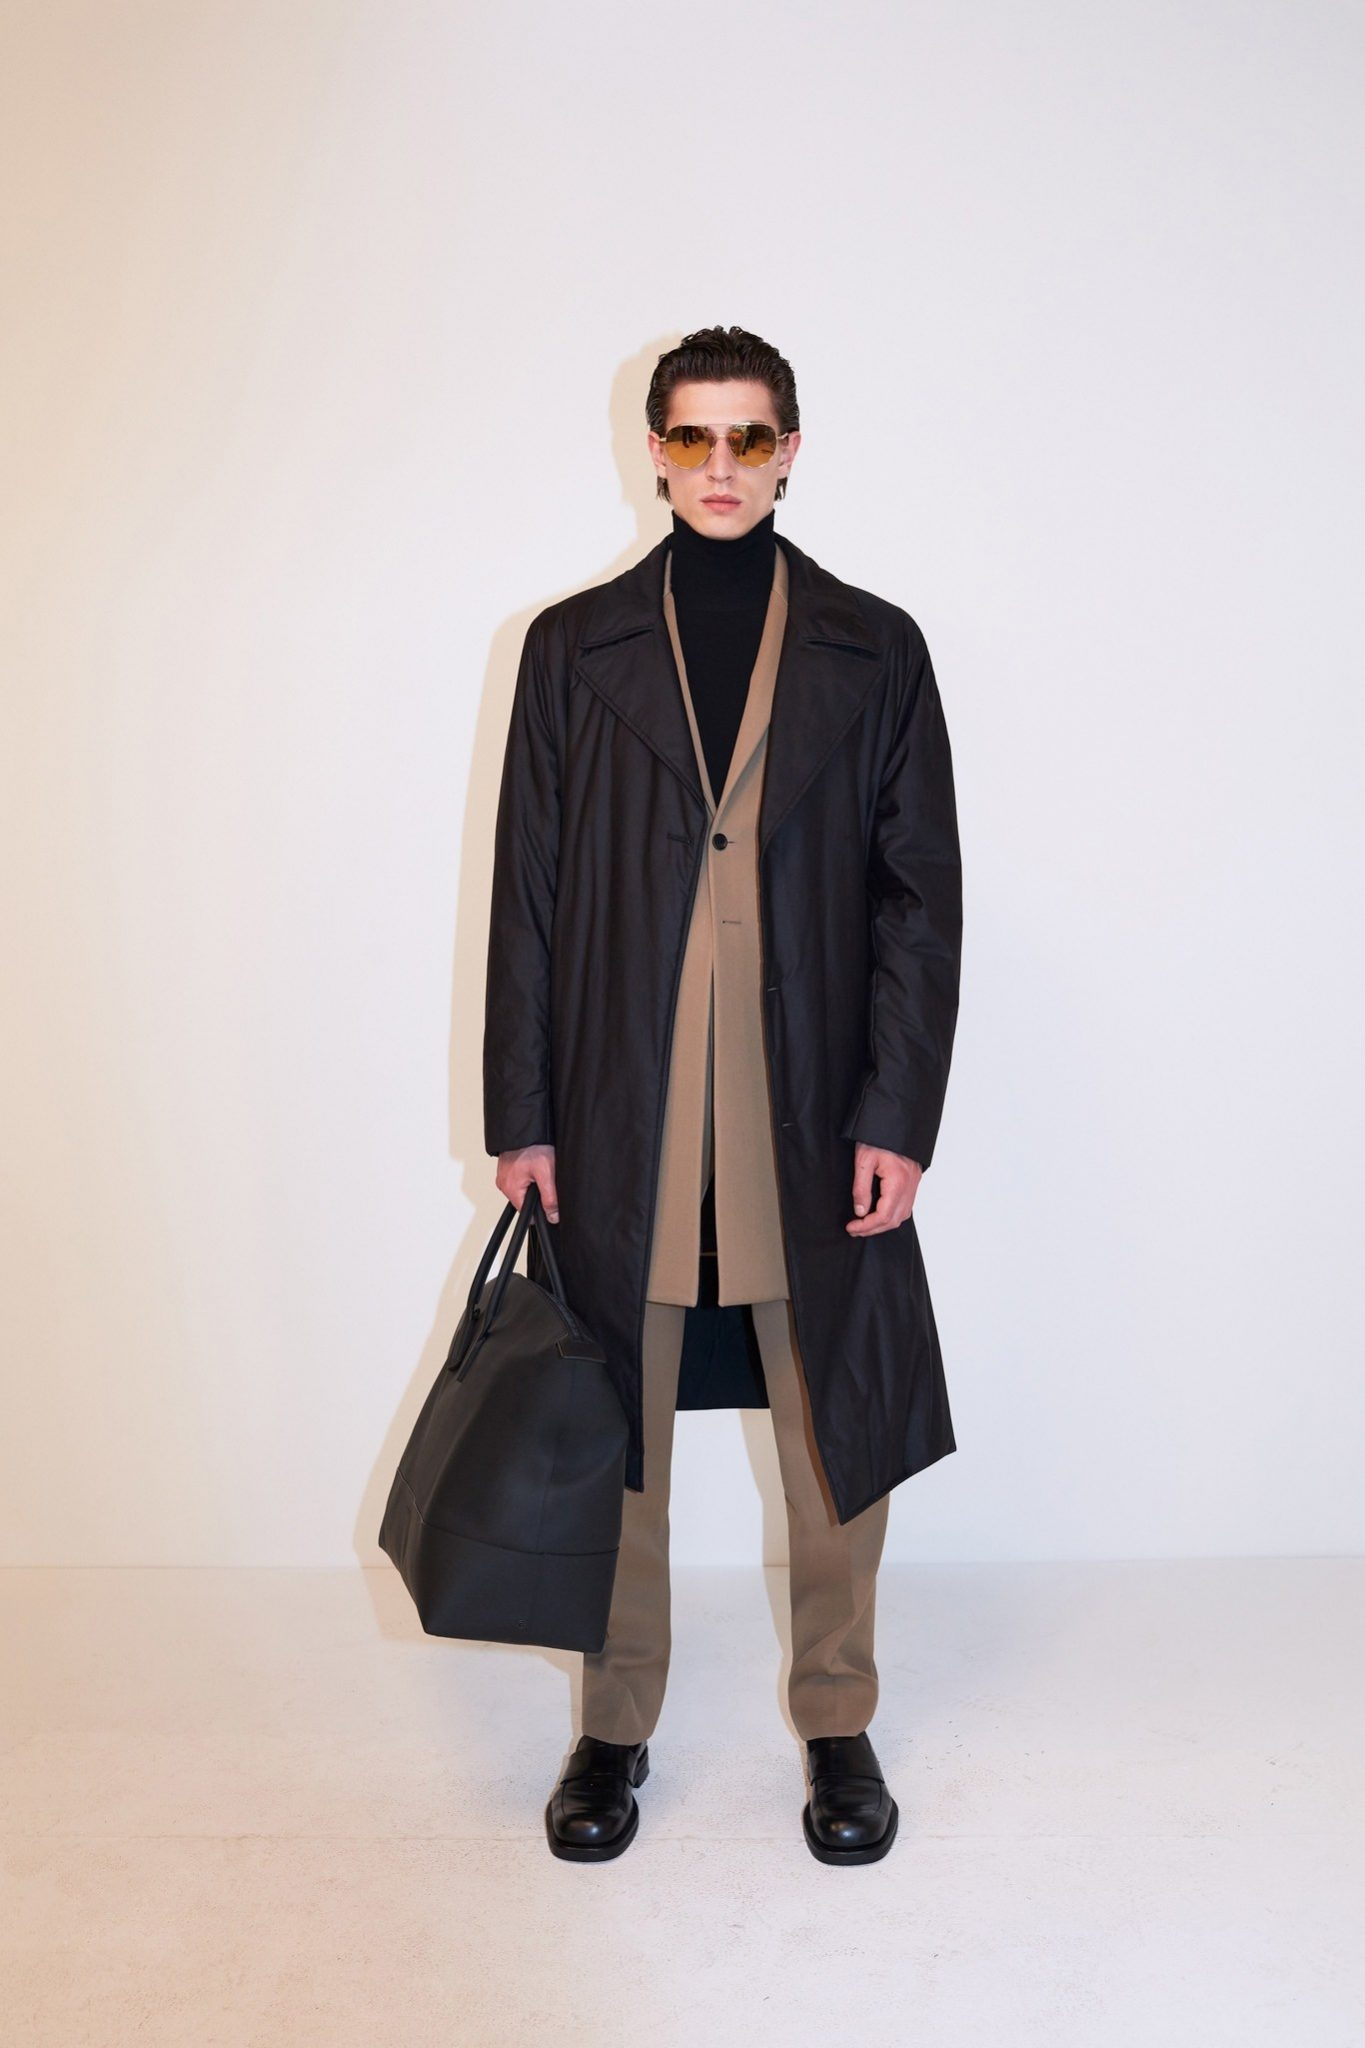 bottega veneta resort 2020, mantel, men fashion